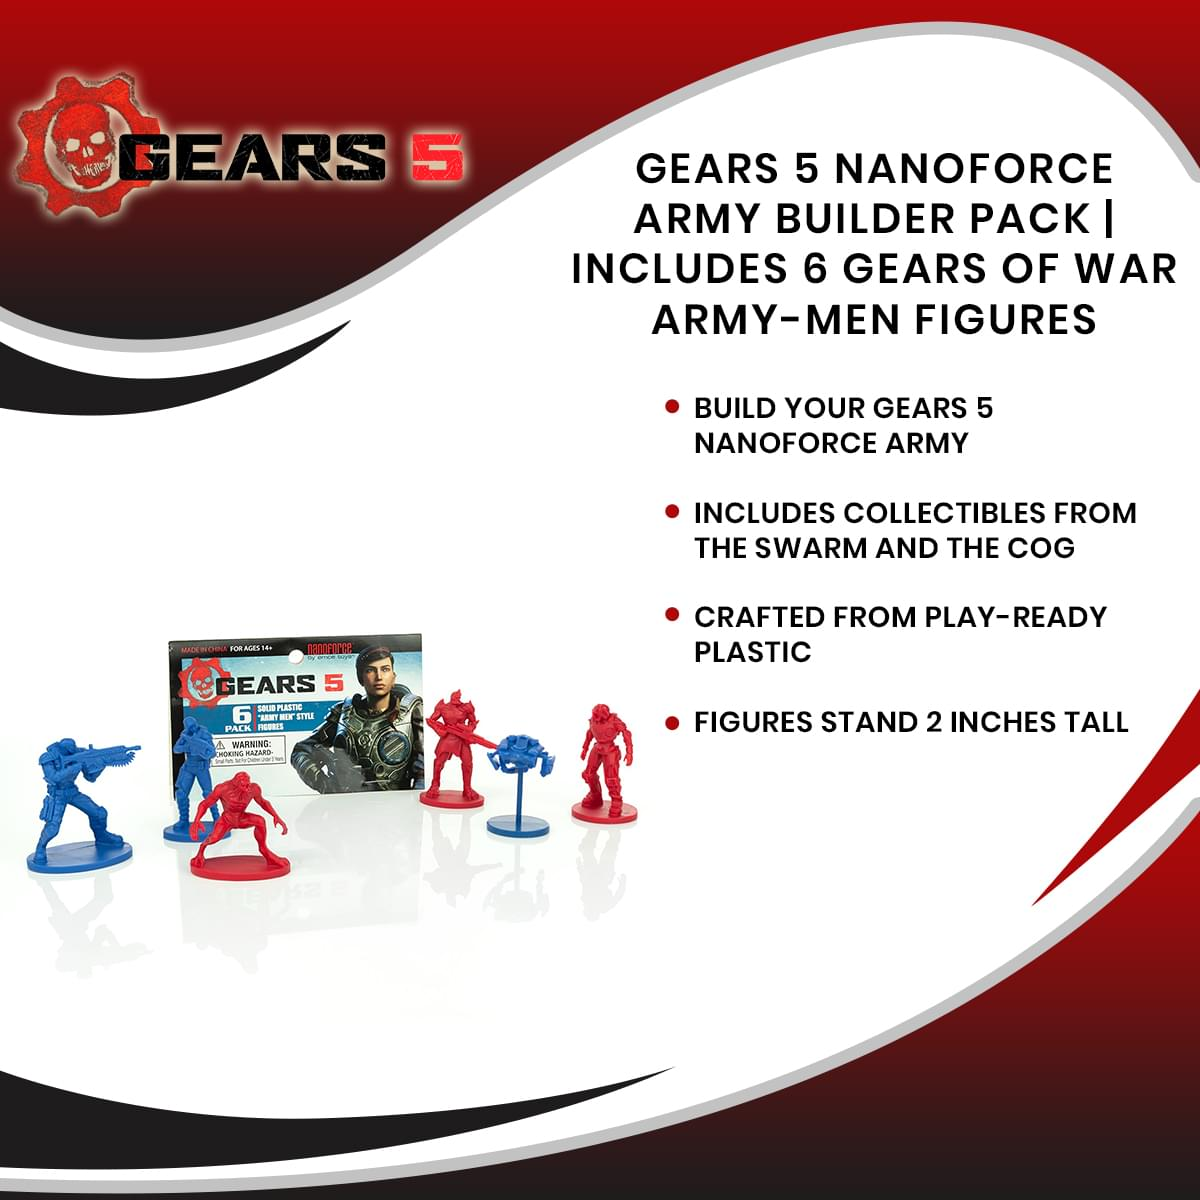 Gears 5 Nanoforce Army Builder Pack | Includes 6 Gears Of War Army-Men Figures